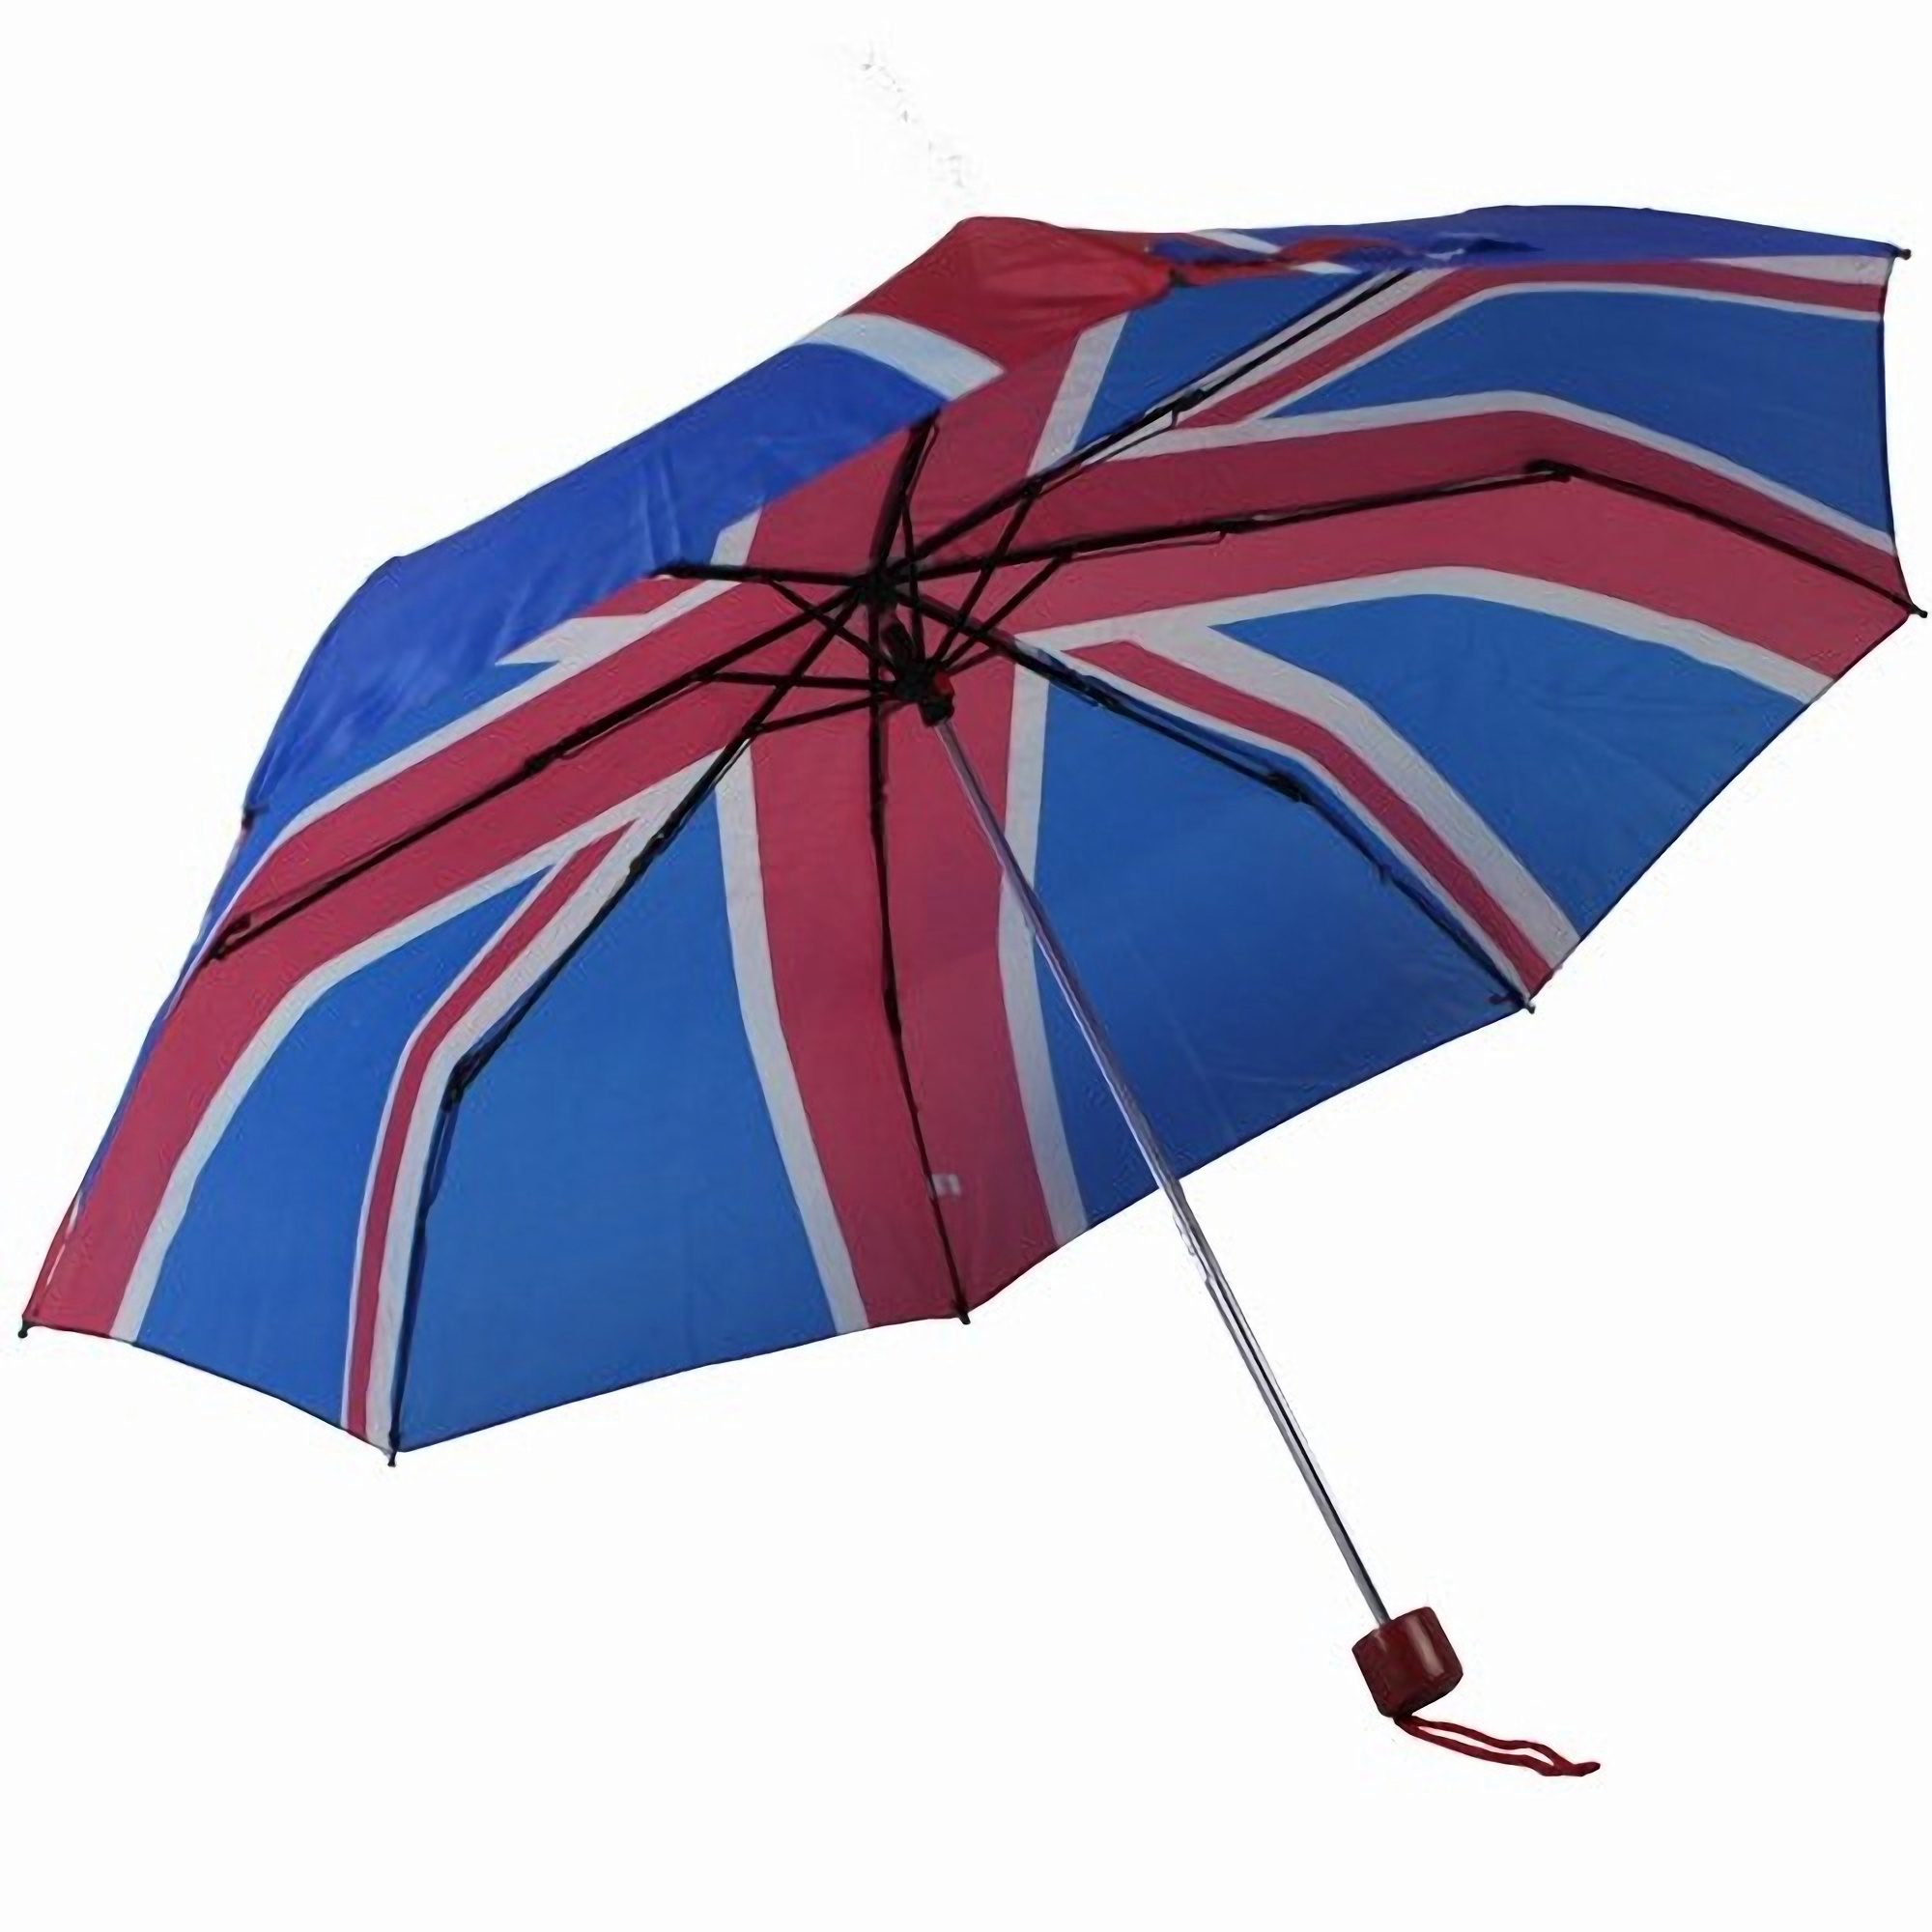 Unisex Union Jack Design Compact Close Umbrella